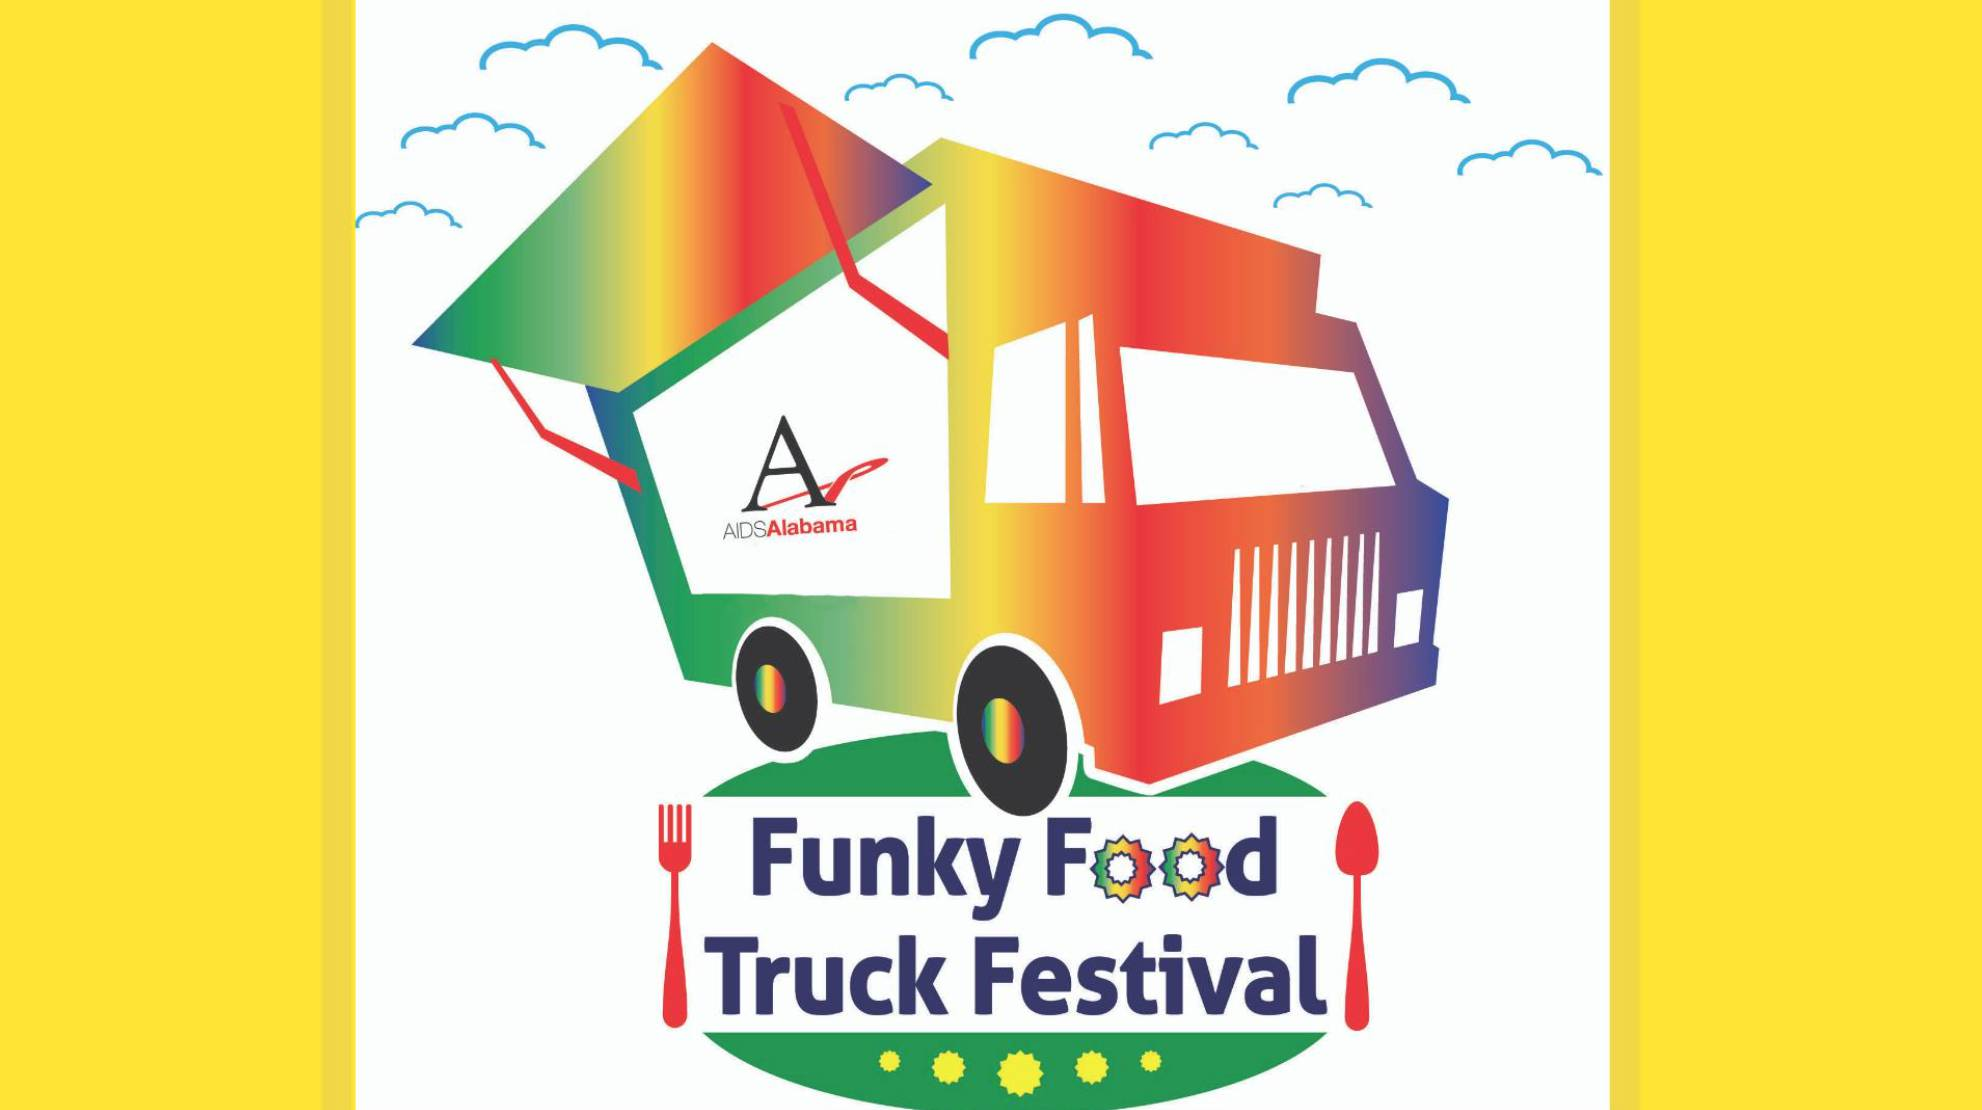 Funkiest Funky Food Truck Festival